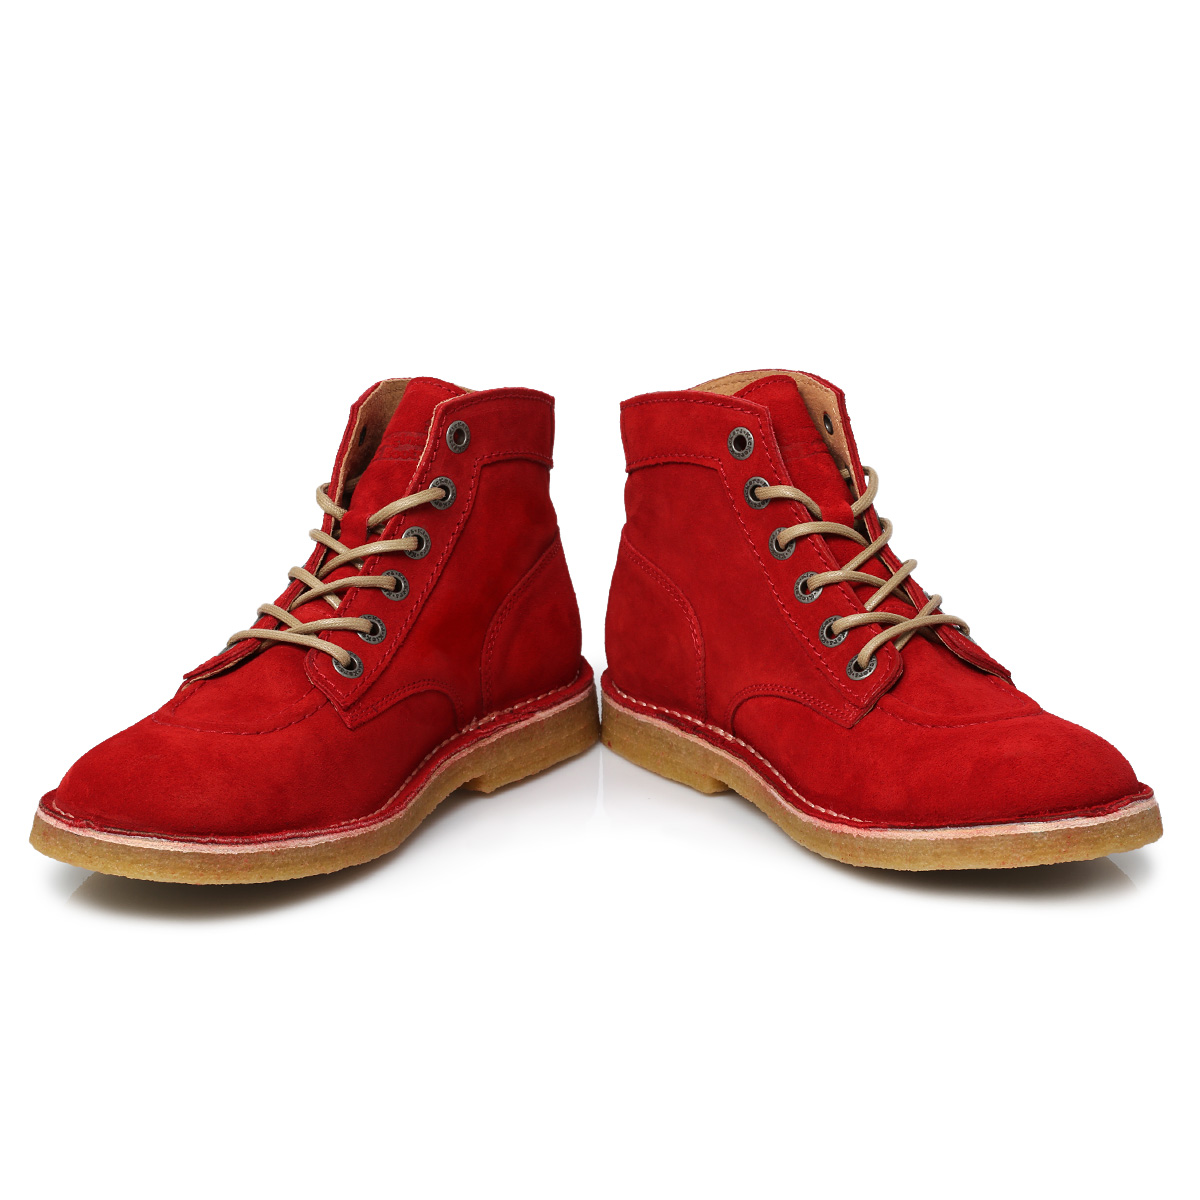 Red Boots Mens aT51I3rQ